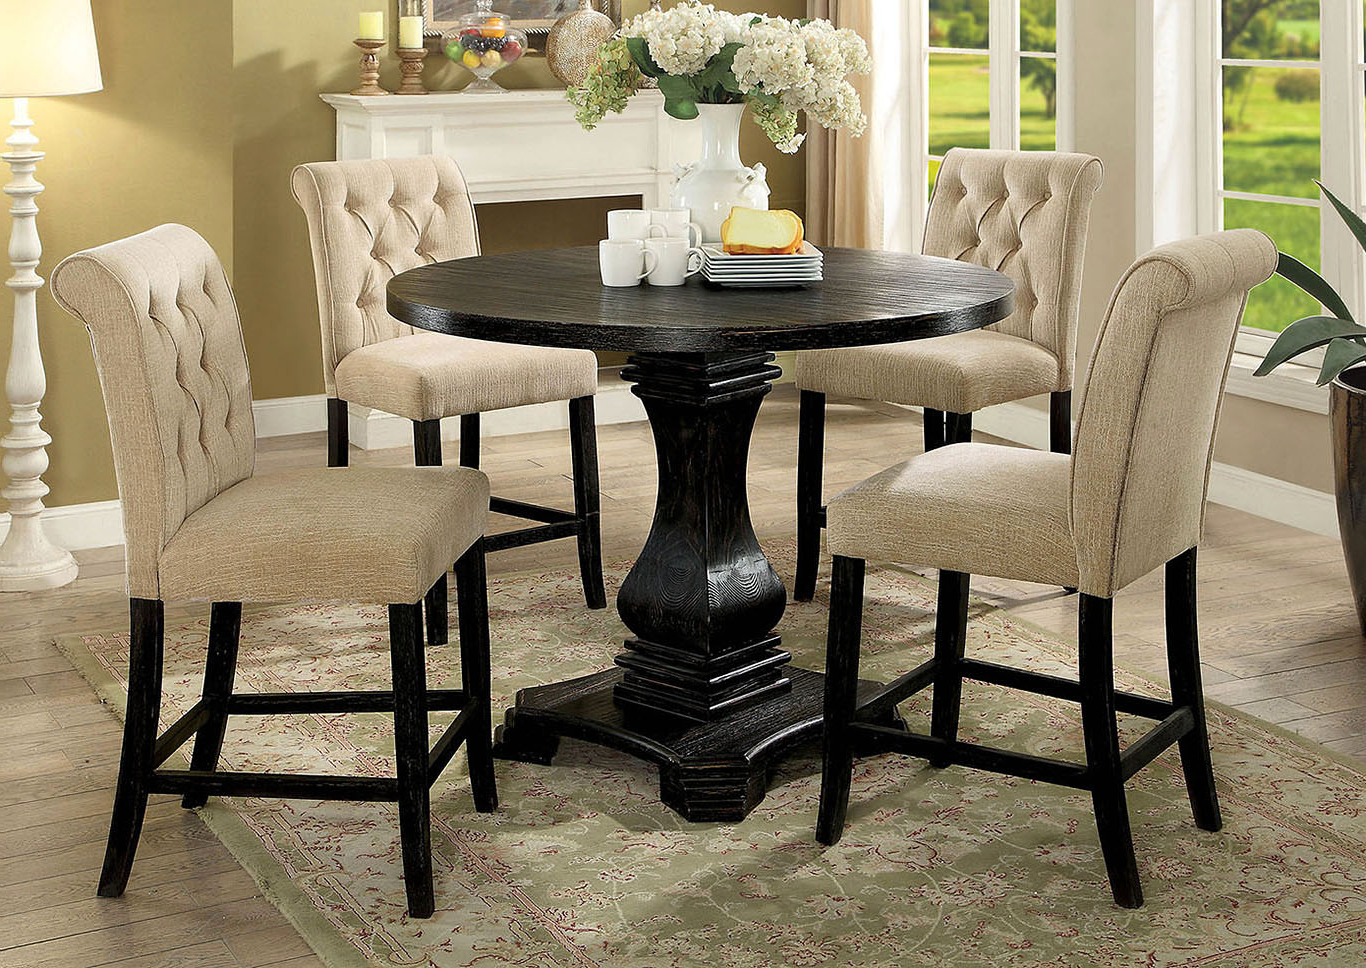 Well Liked Peaceful Living Furniture Nerissa Antique Black Round For Antique Black Wood Kitchen Dining Tables (View 12 of 30)